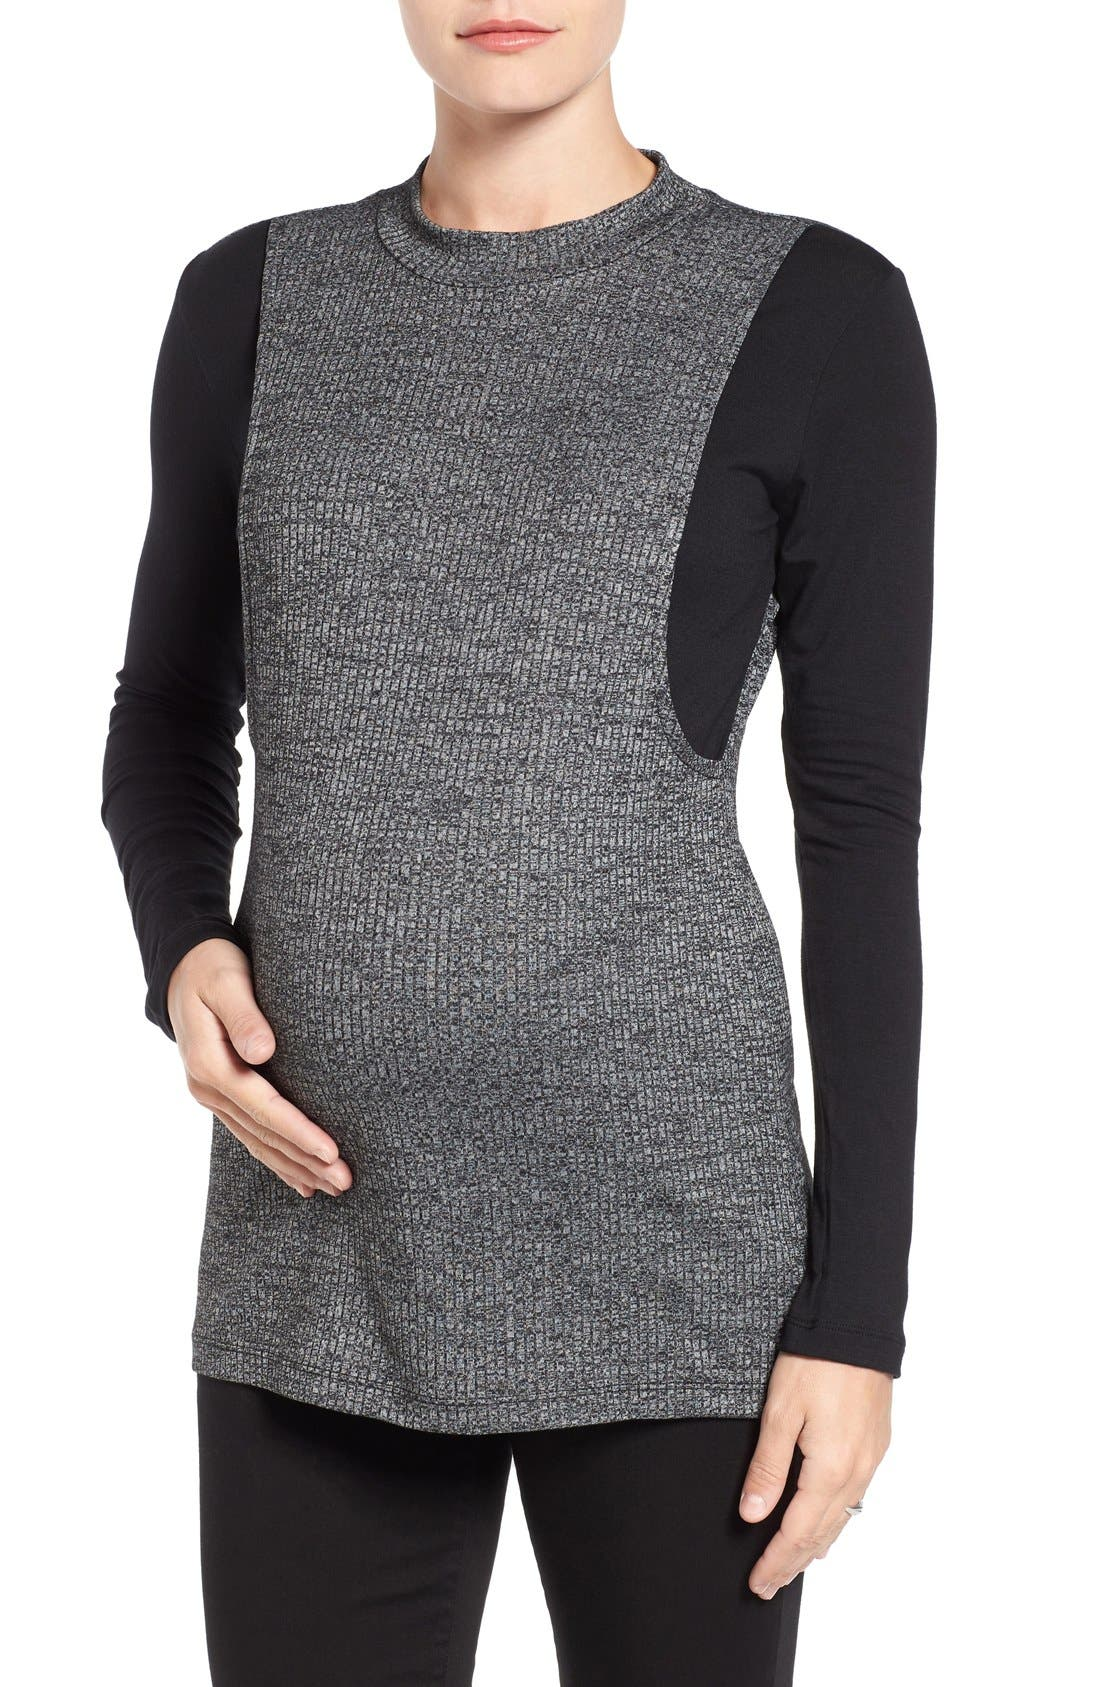 Main Image - LAB40 'Brie' Colorblock Maternity/Nursing Sweater